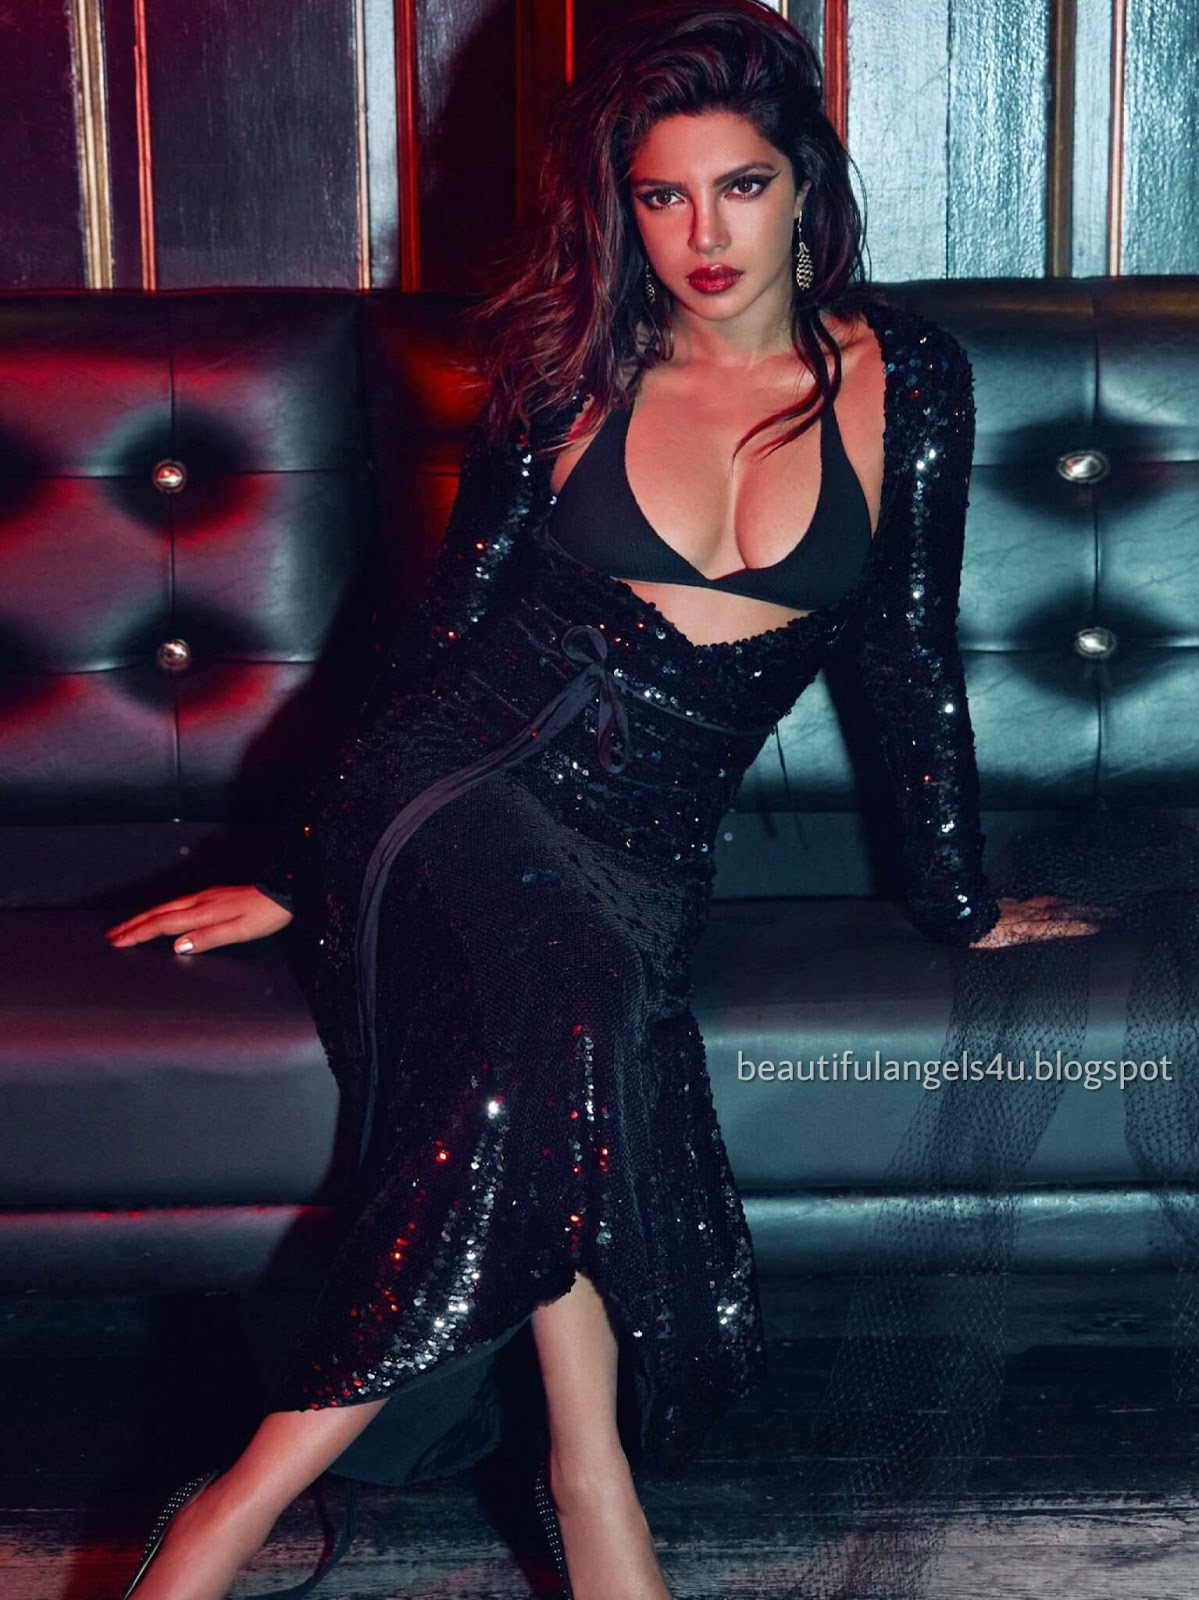 Priyanka Chopra Hot Photoshoot For Vogue India Magazine -7064